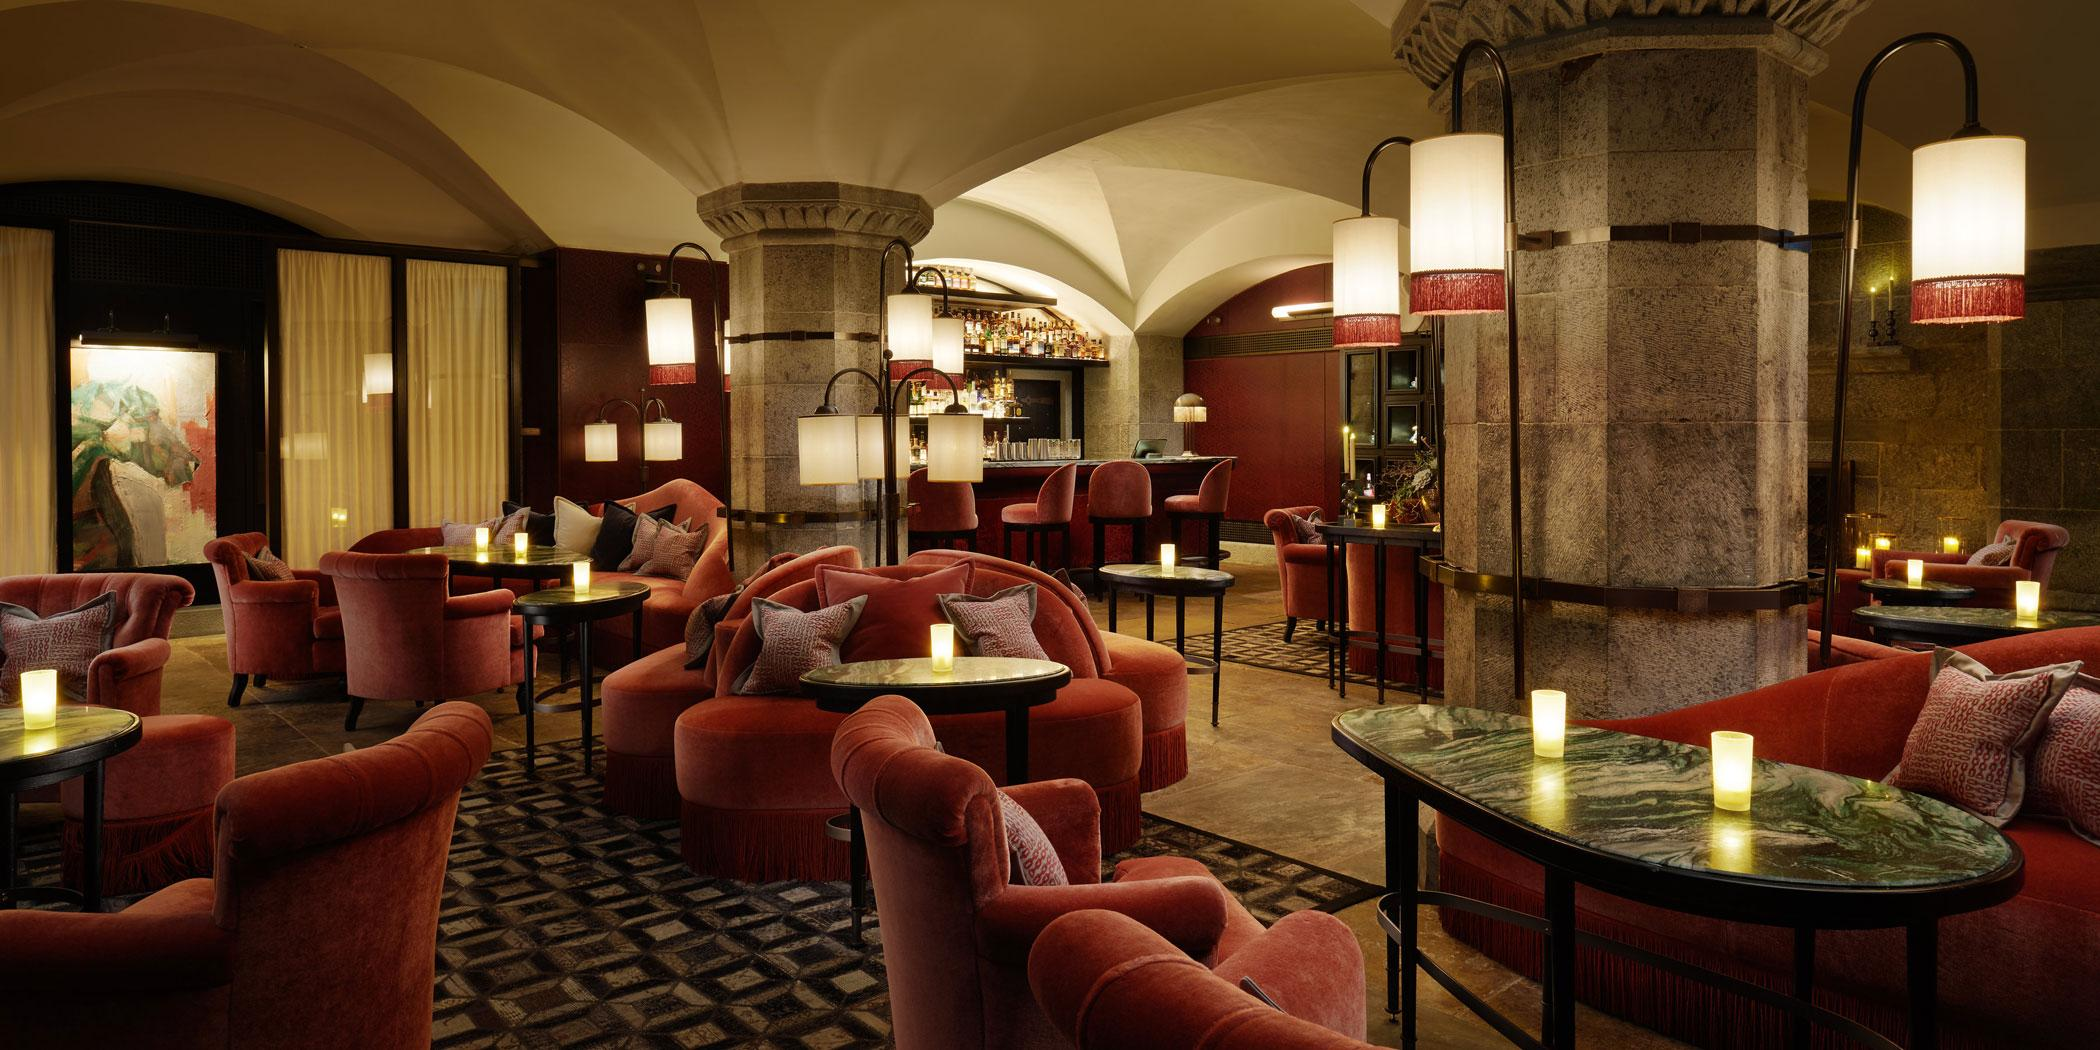 Ireland's mid-19th century Adare Manor features a cozy new whiskey lounge called the Tack Room.